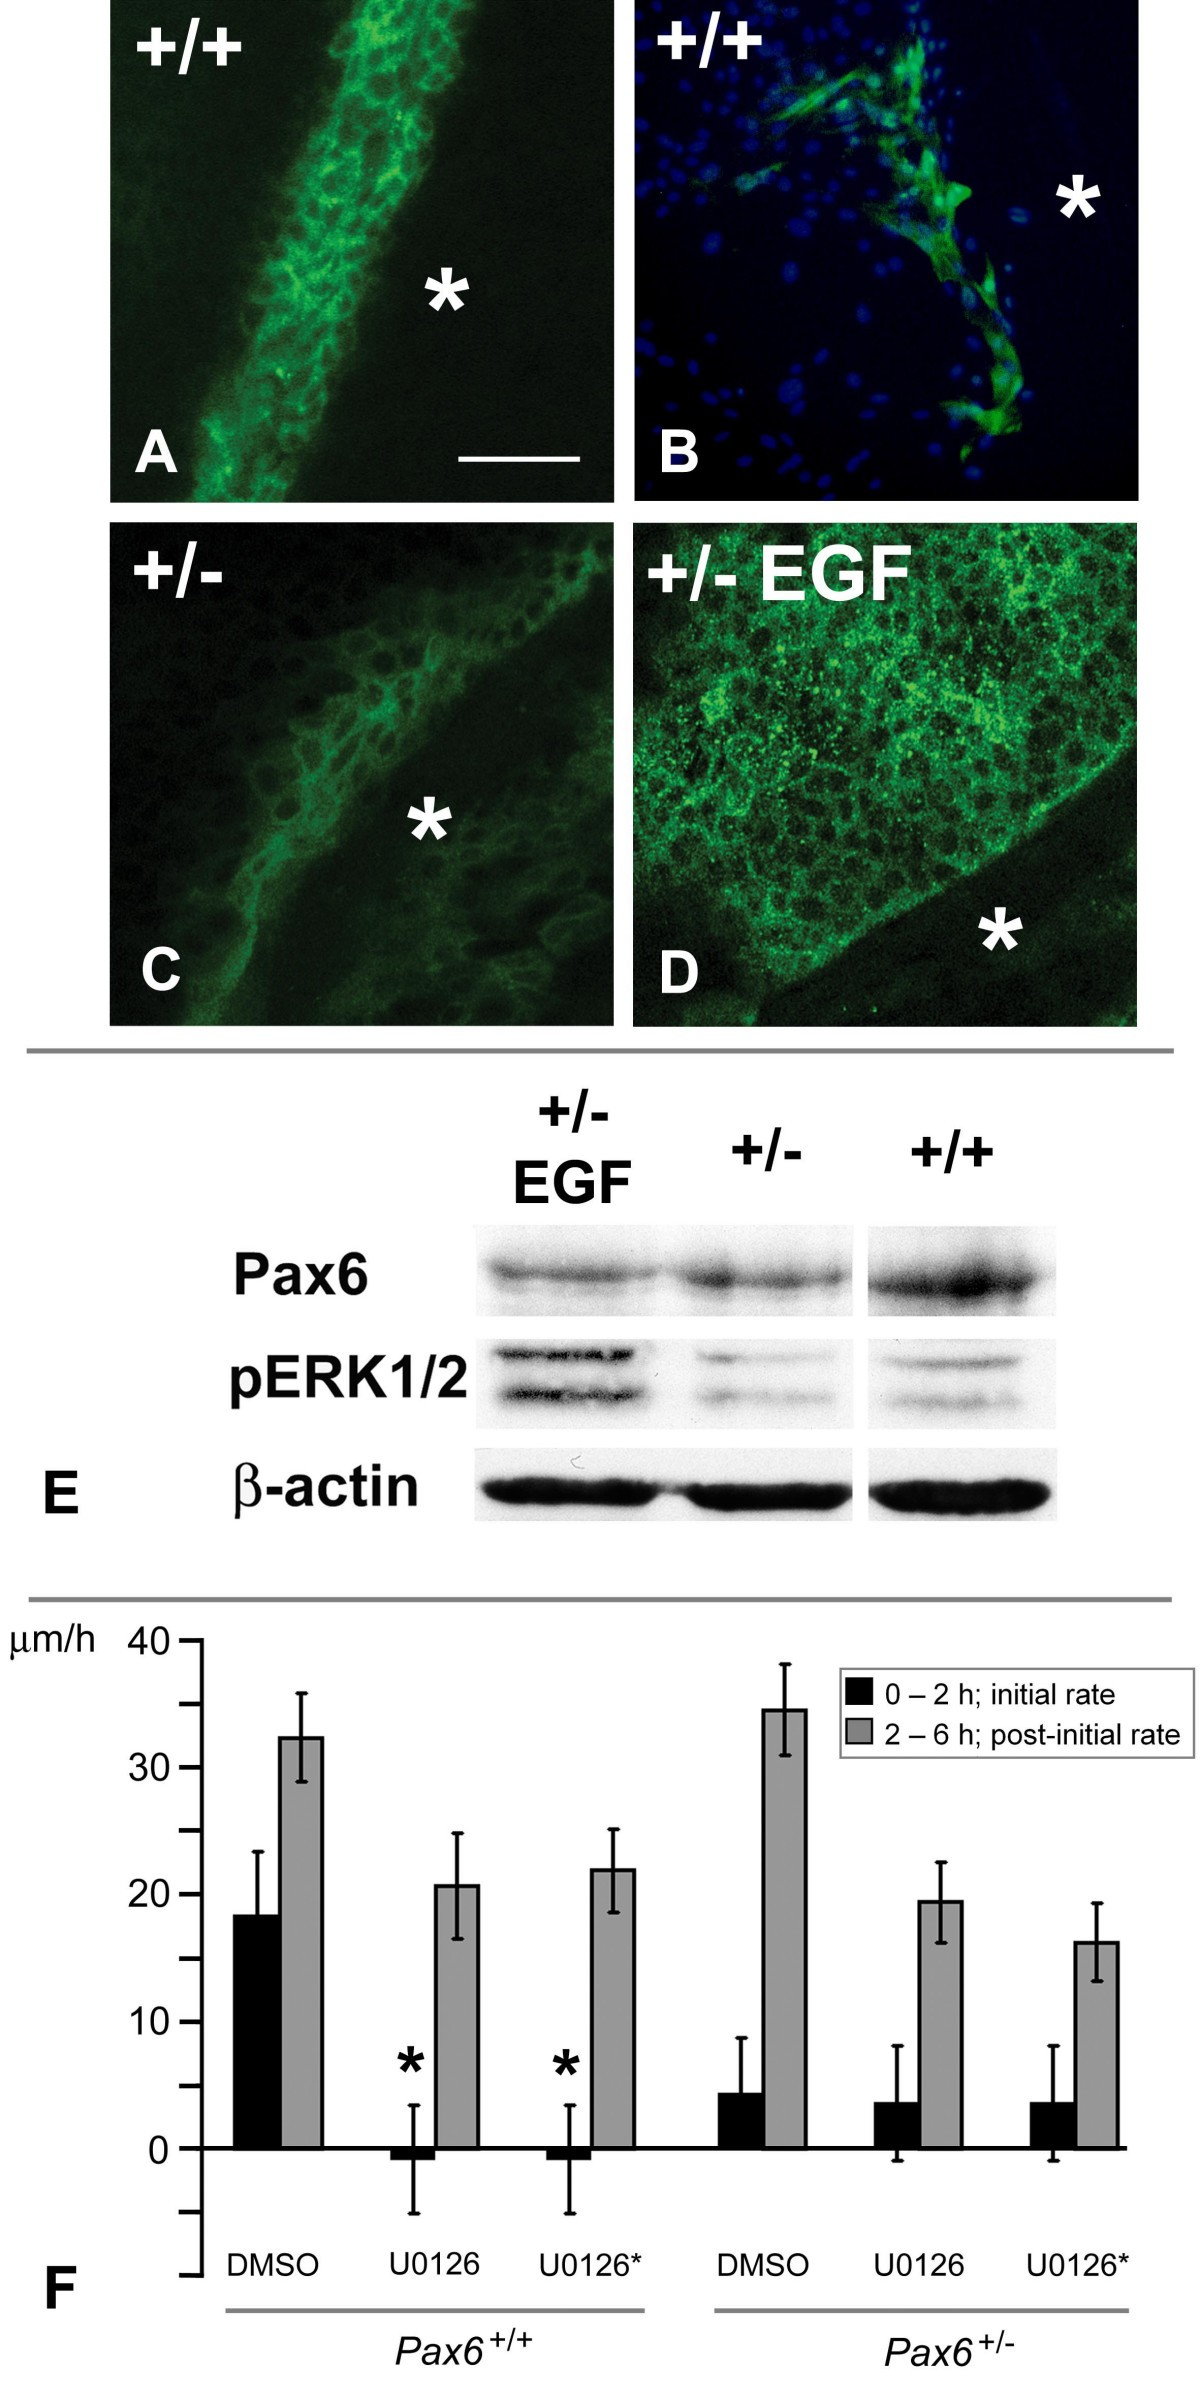 The Roles Of Calcium Signaling And Erk1 2 Phosphorylation In A Pax6 Jacinto 6 Block Diagram Figure 7